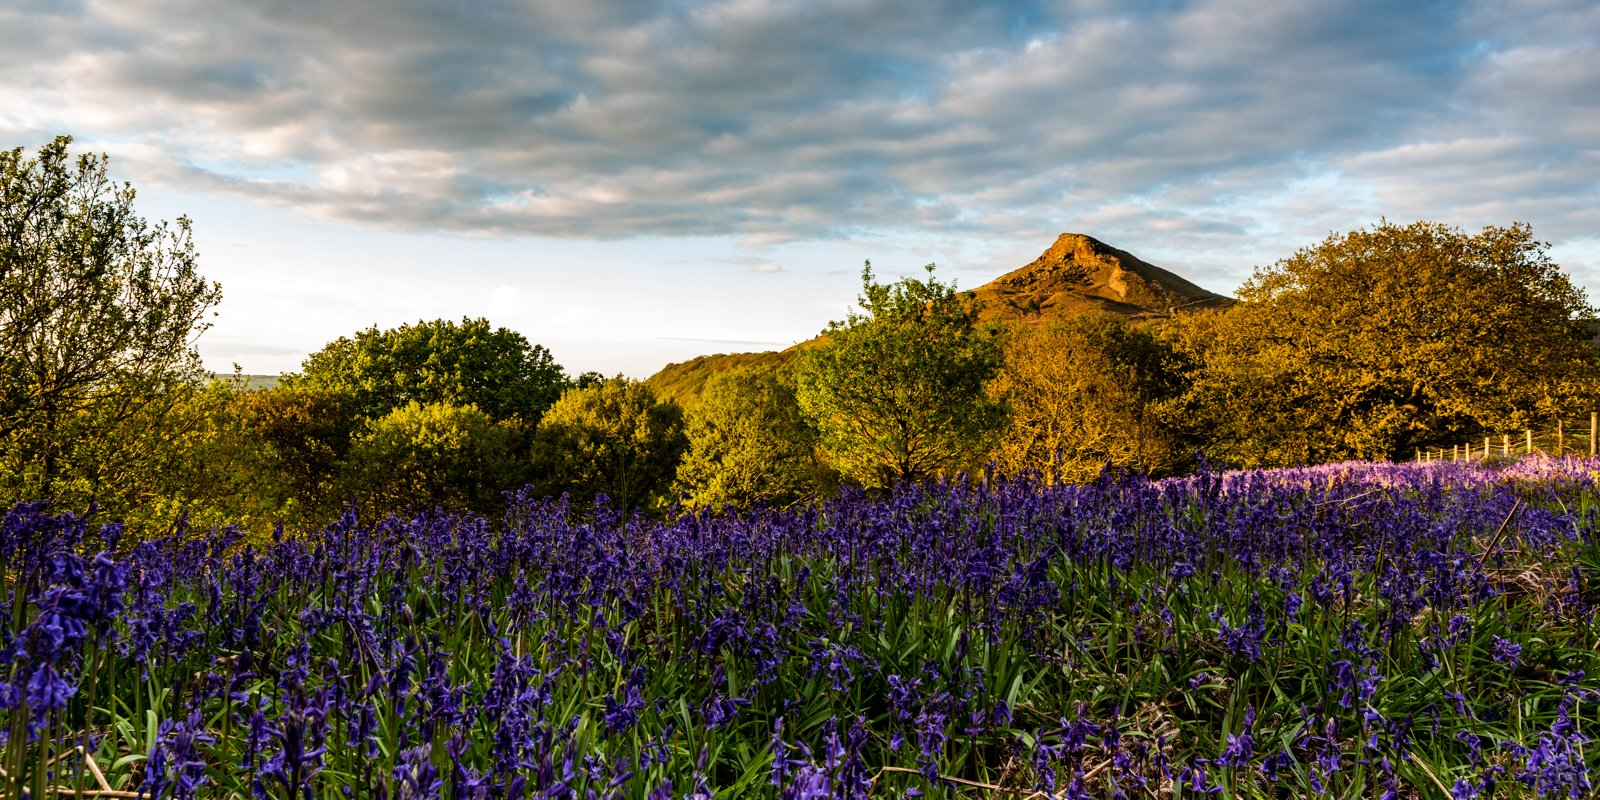 4th 262 votes - Bluebells by Roseberry Topping